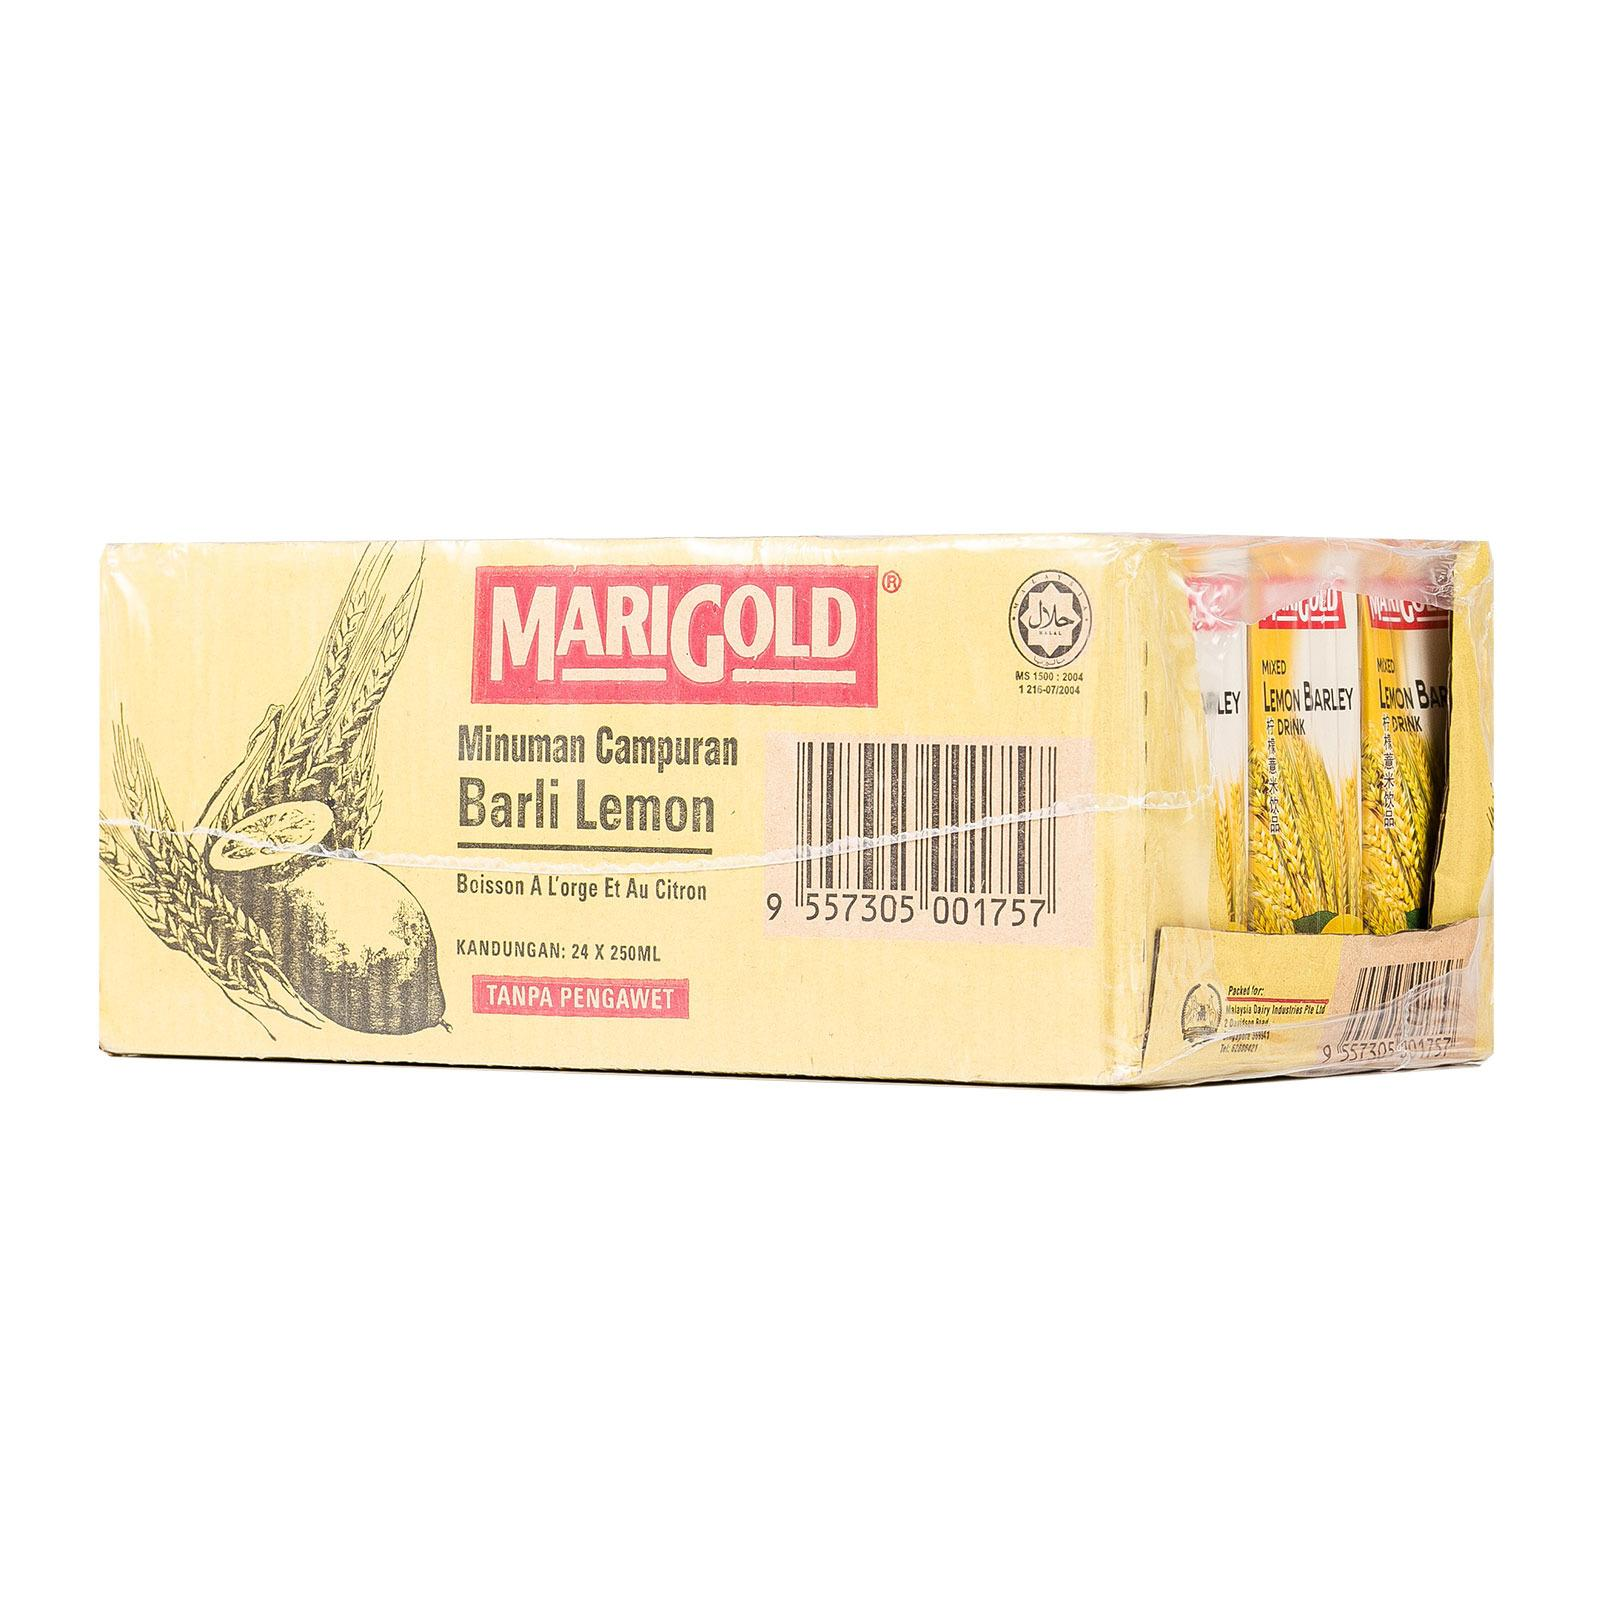 MARIGOLD Mixed Lemon Barley Drink - Case